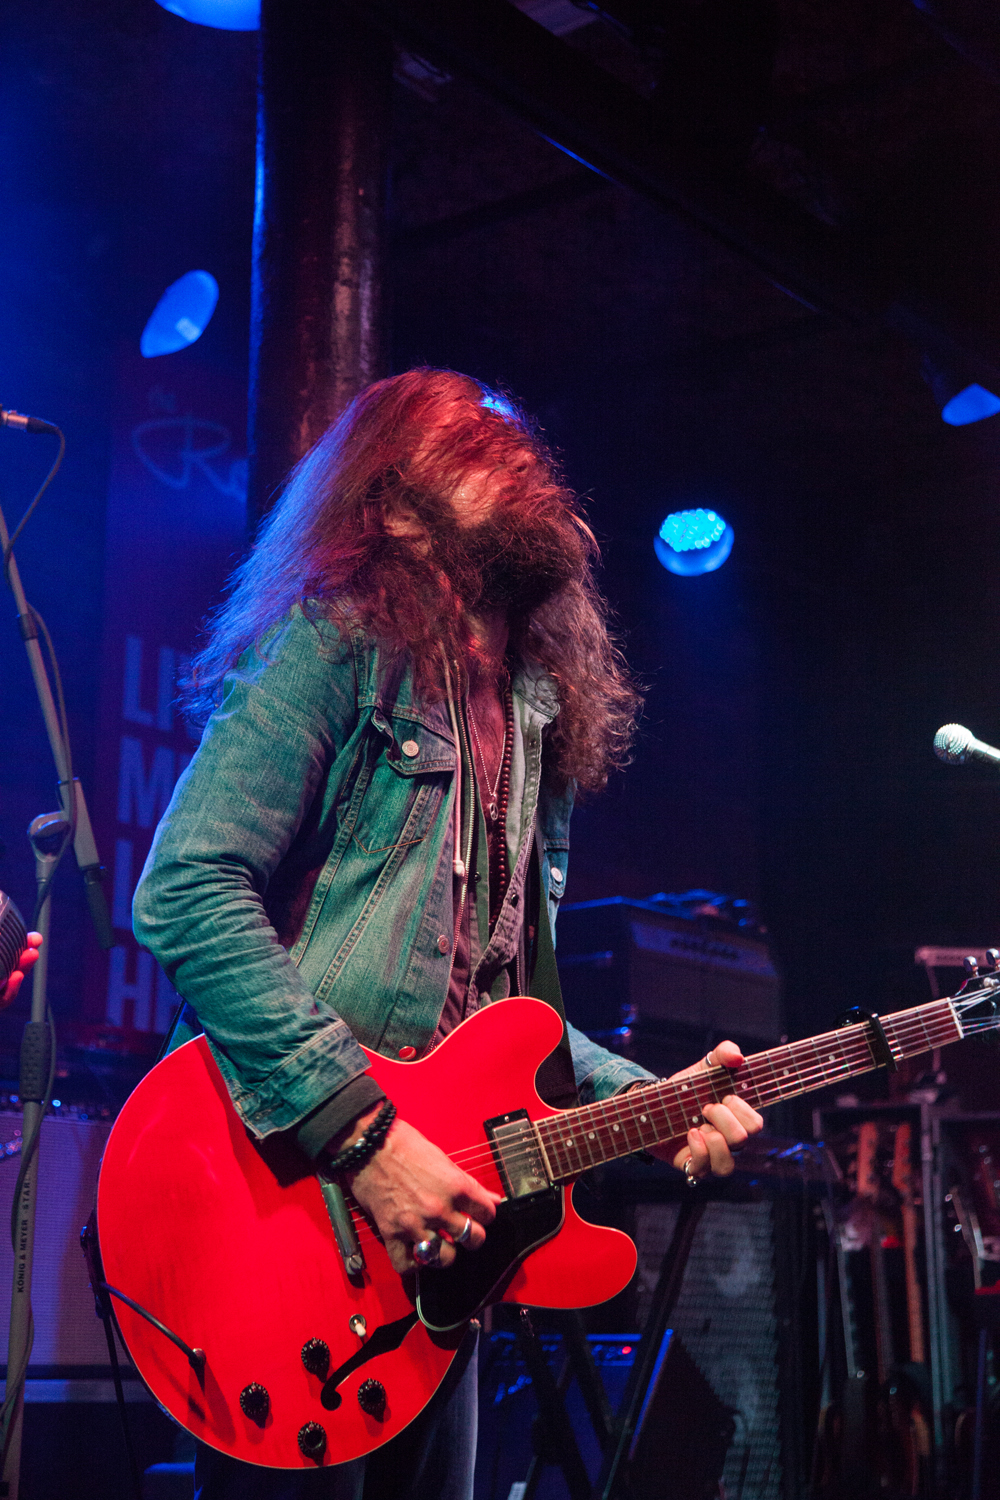 The Matinee @ The Roxy Christine McAvoy Photography